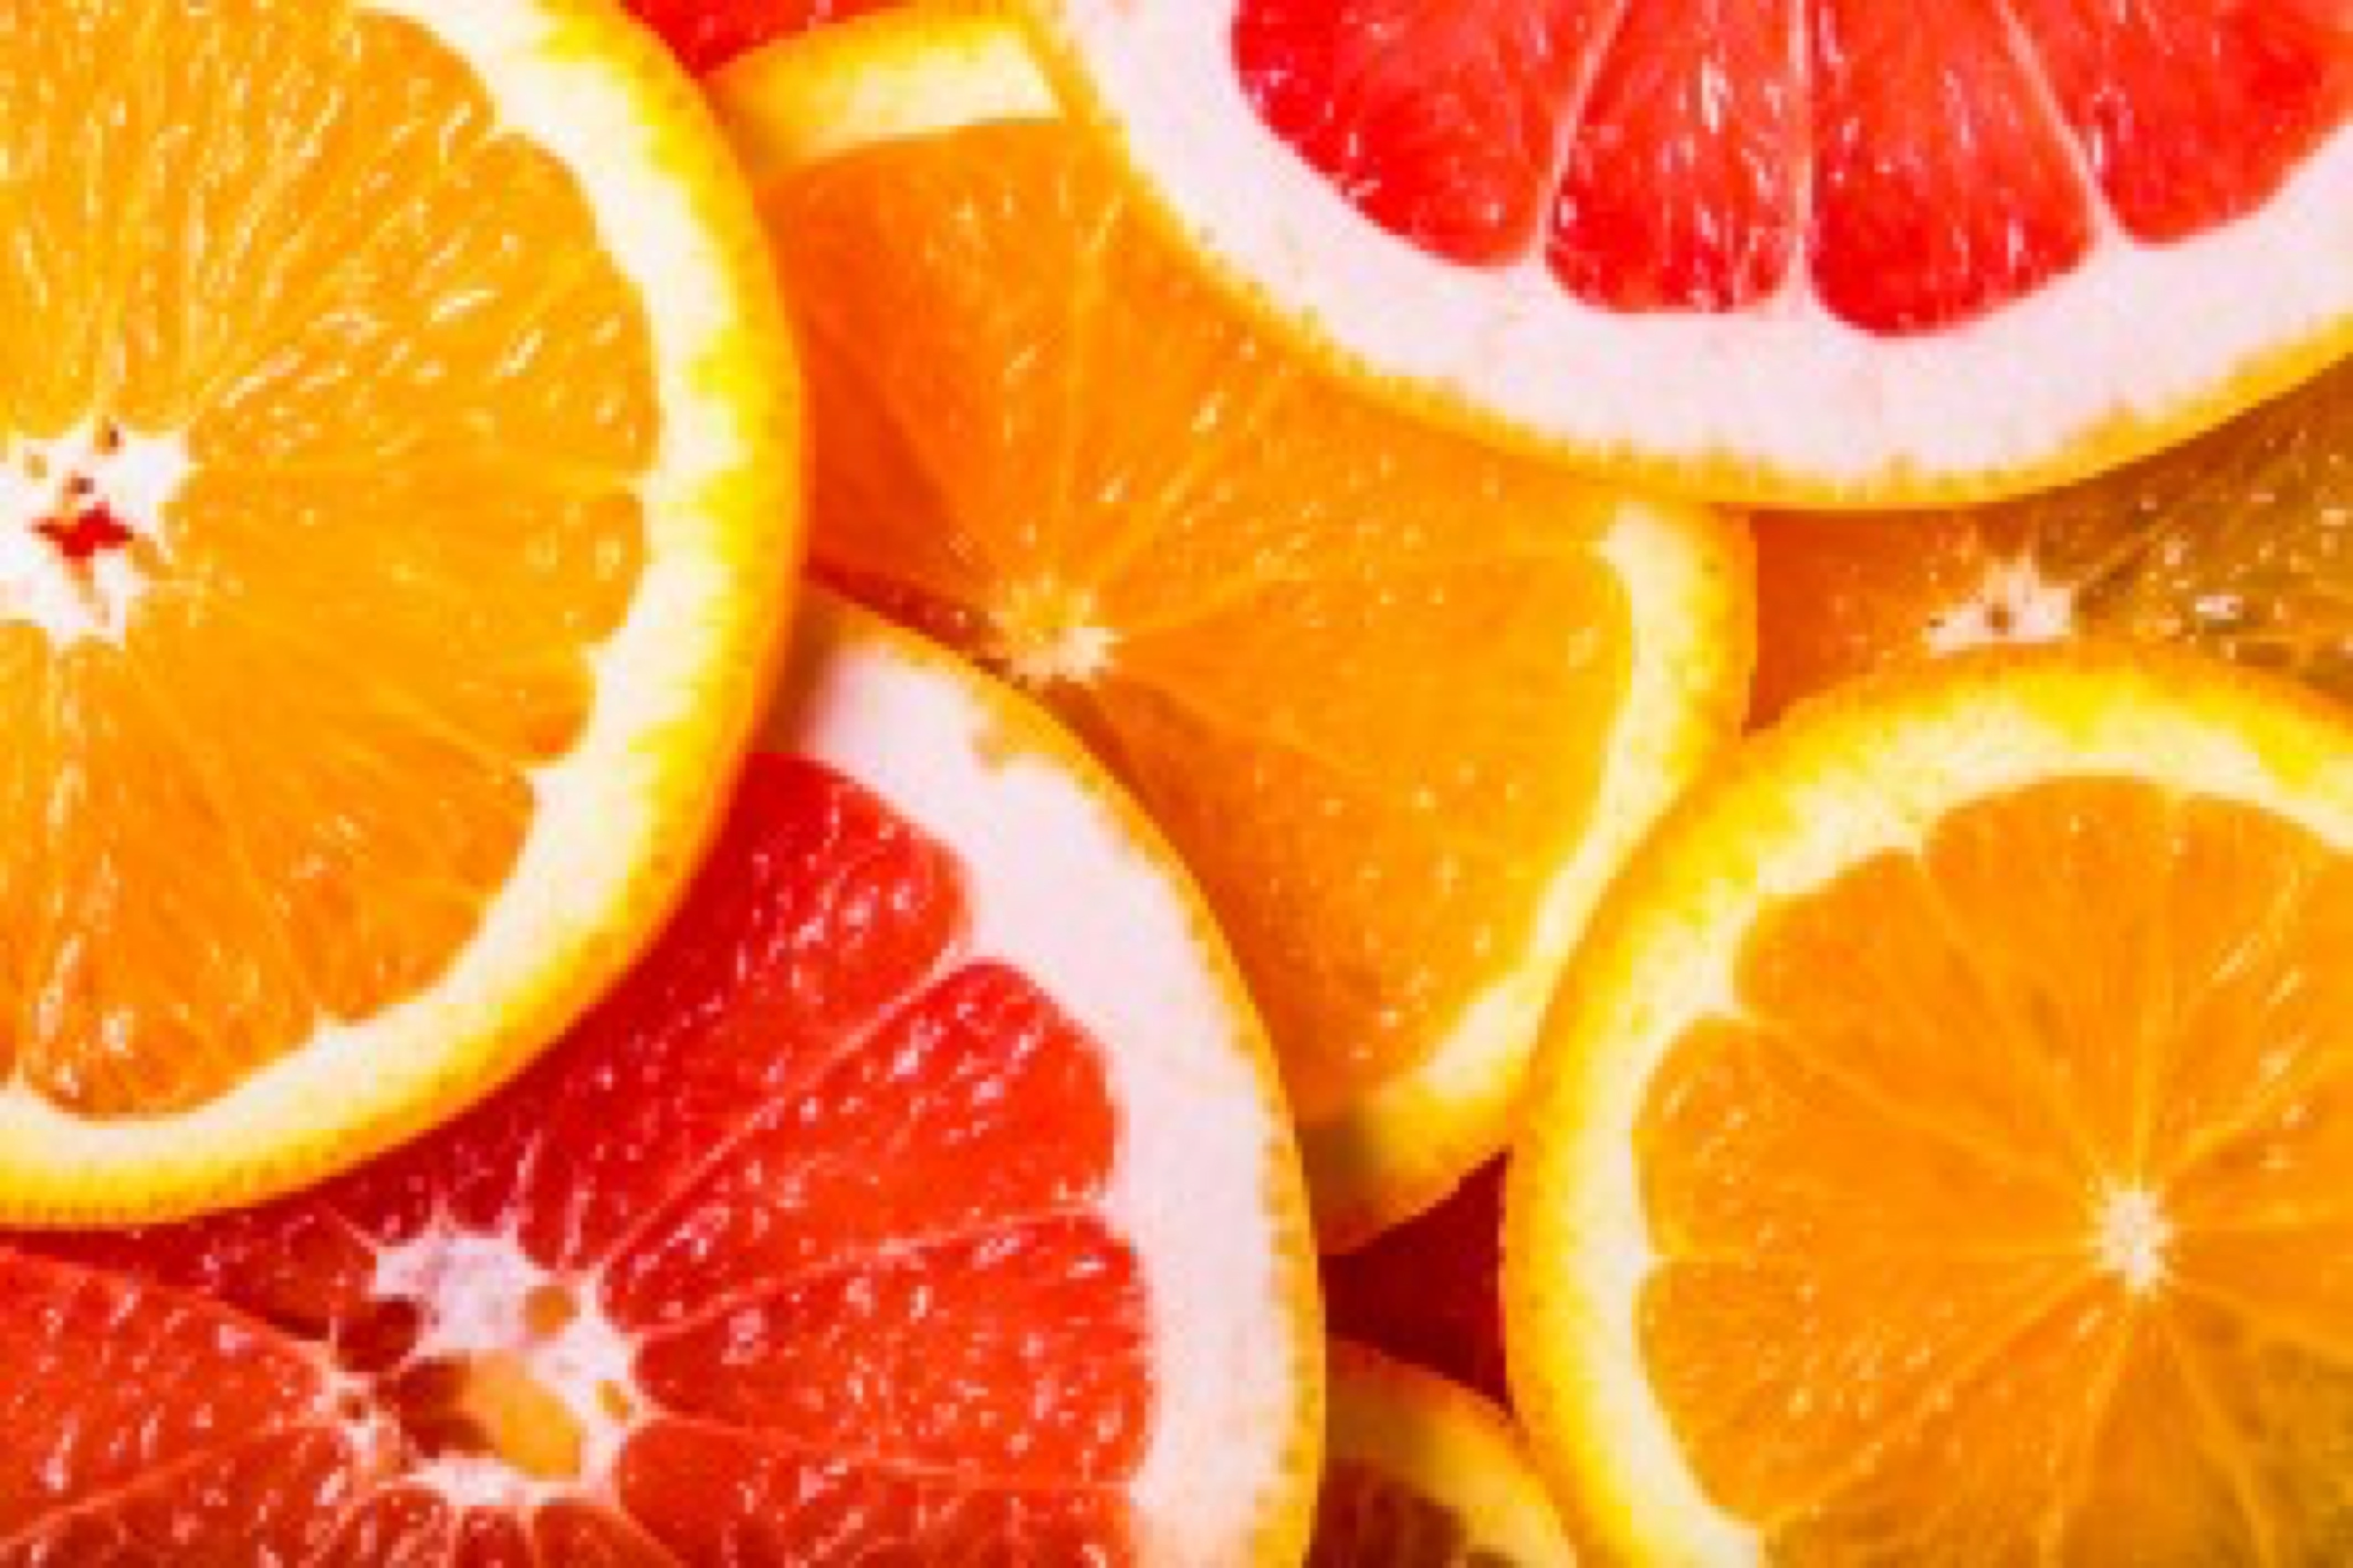 background made with a heap of sliced oranges and grapefruits